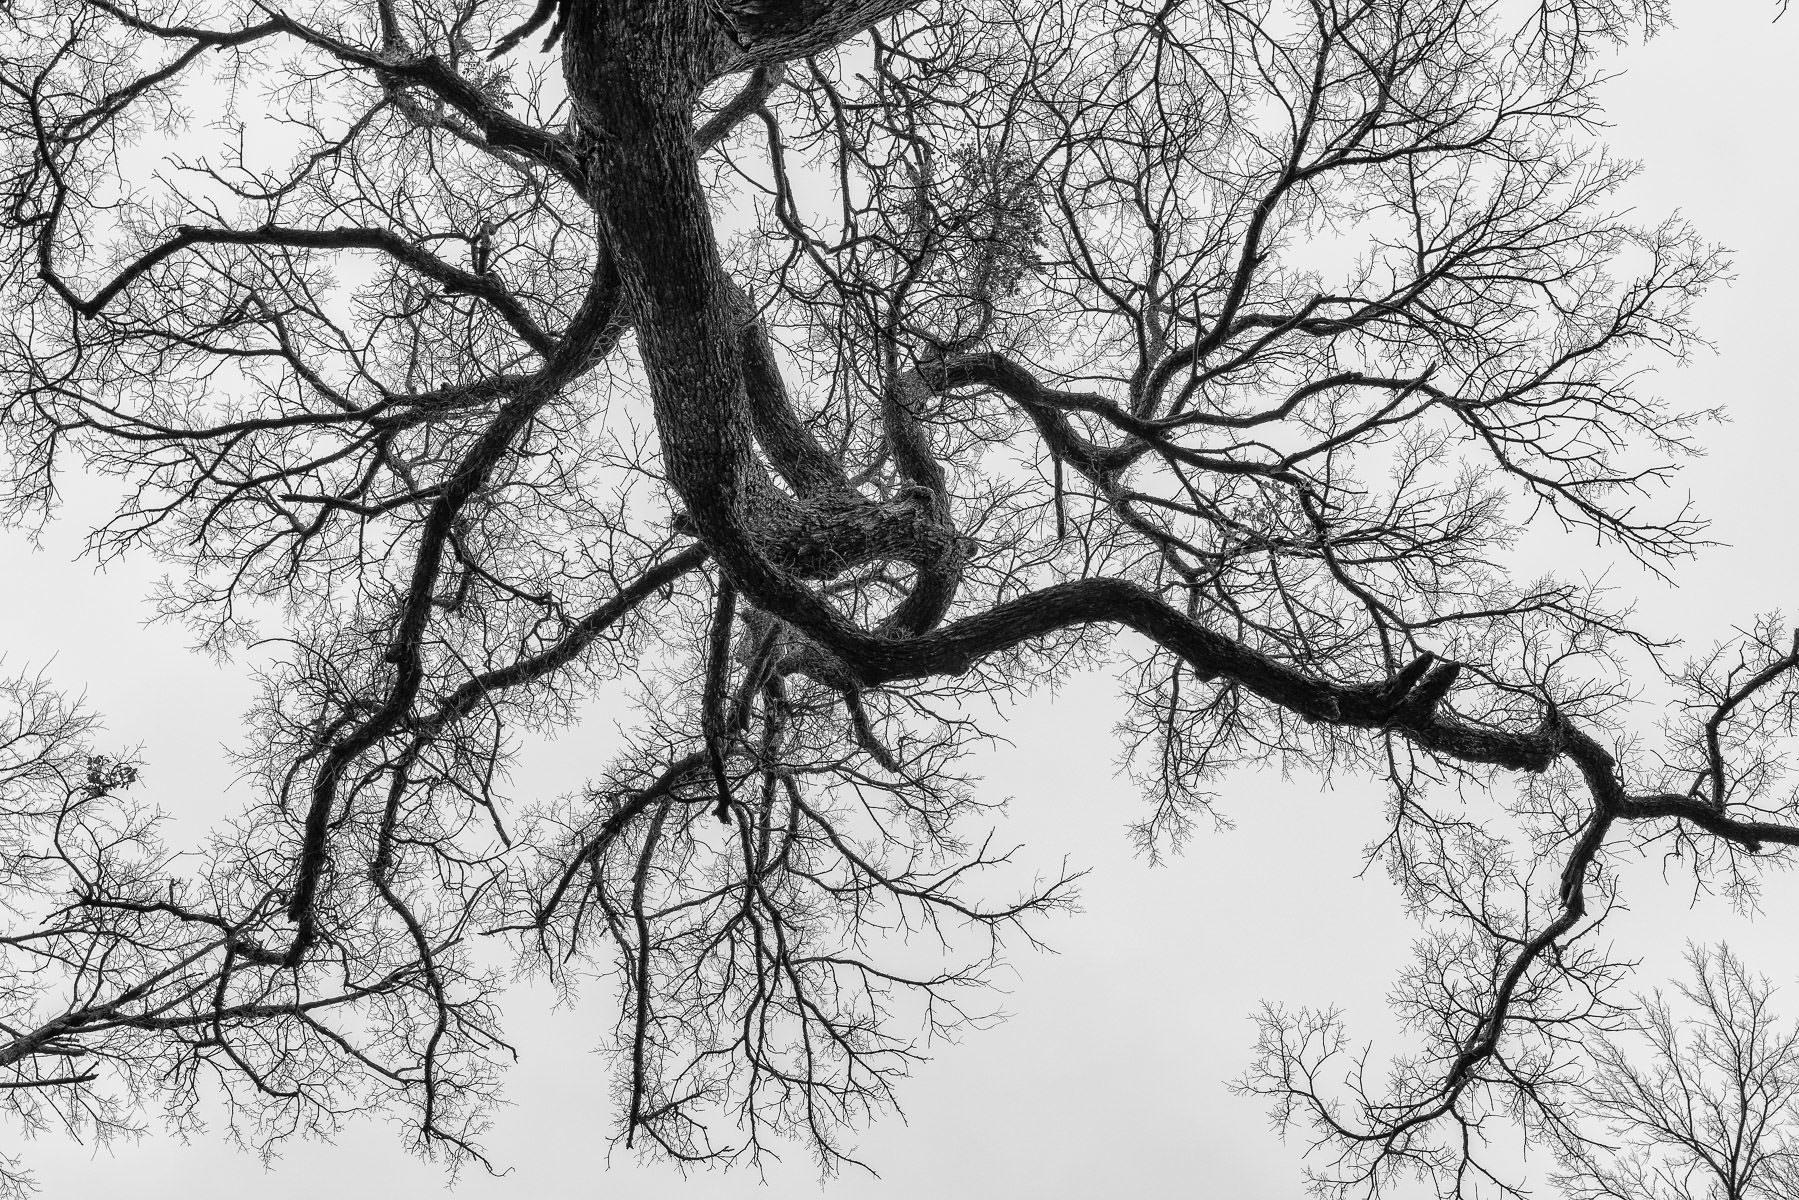 A tree and its branches reach into the sky at the Lewisville Lake Environmental Learning Area, Texas.